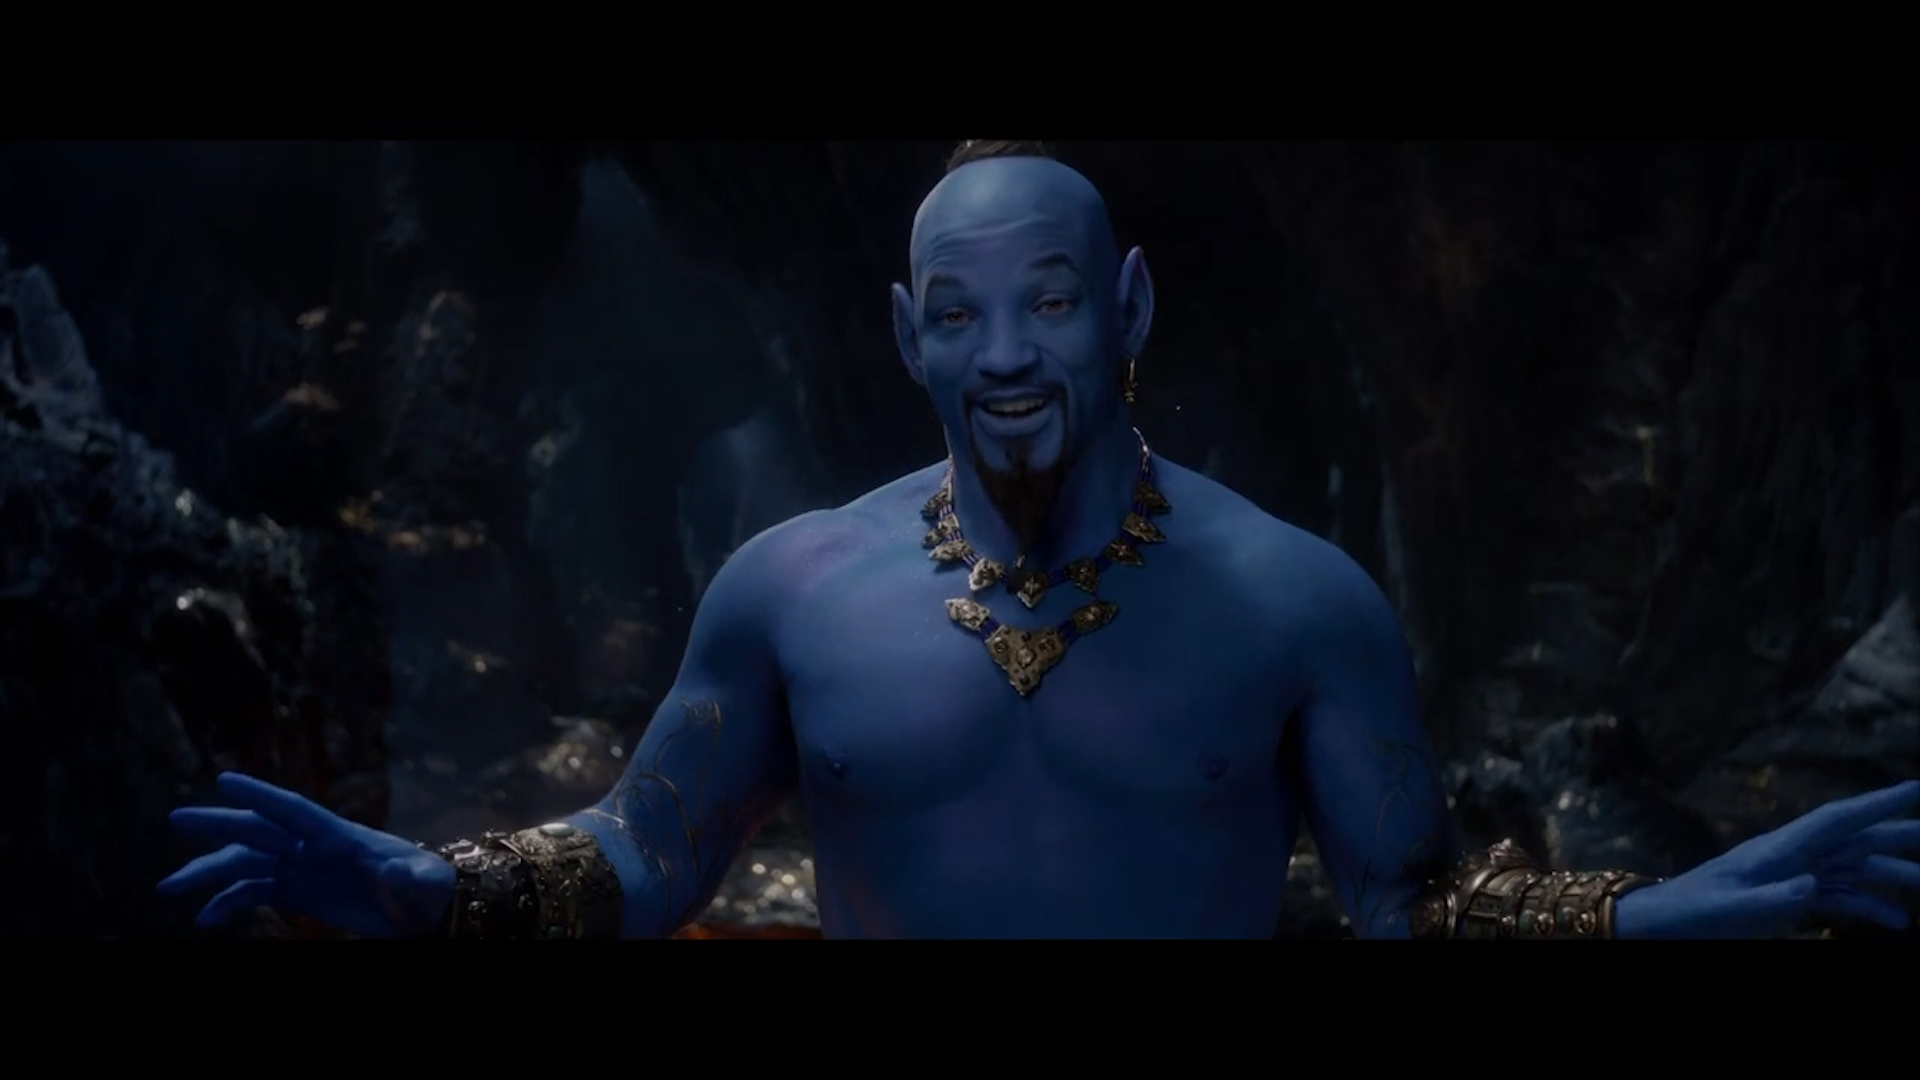 Will Smith revealed as blue Genie in 'Aladdin'